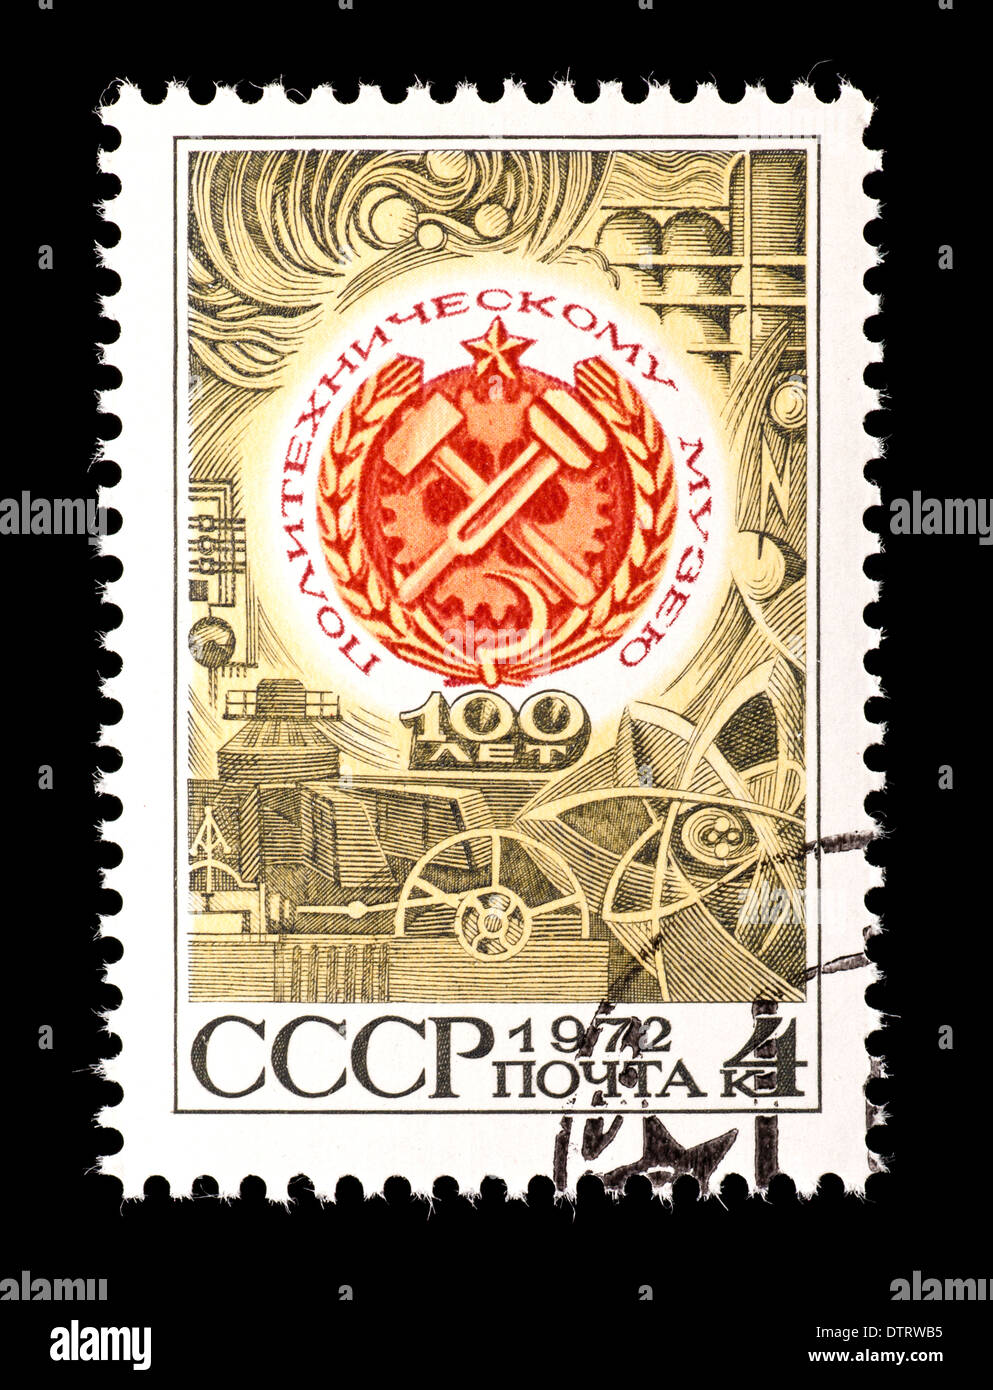 Postage Stamp From The Soviet Union Ussr Depicting The Symbols Of